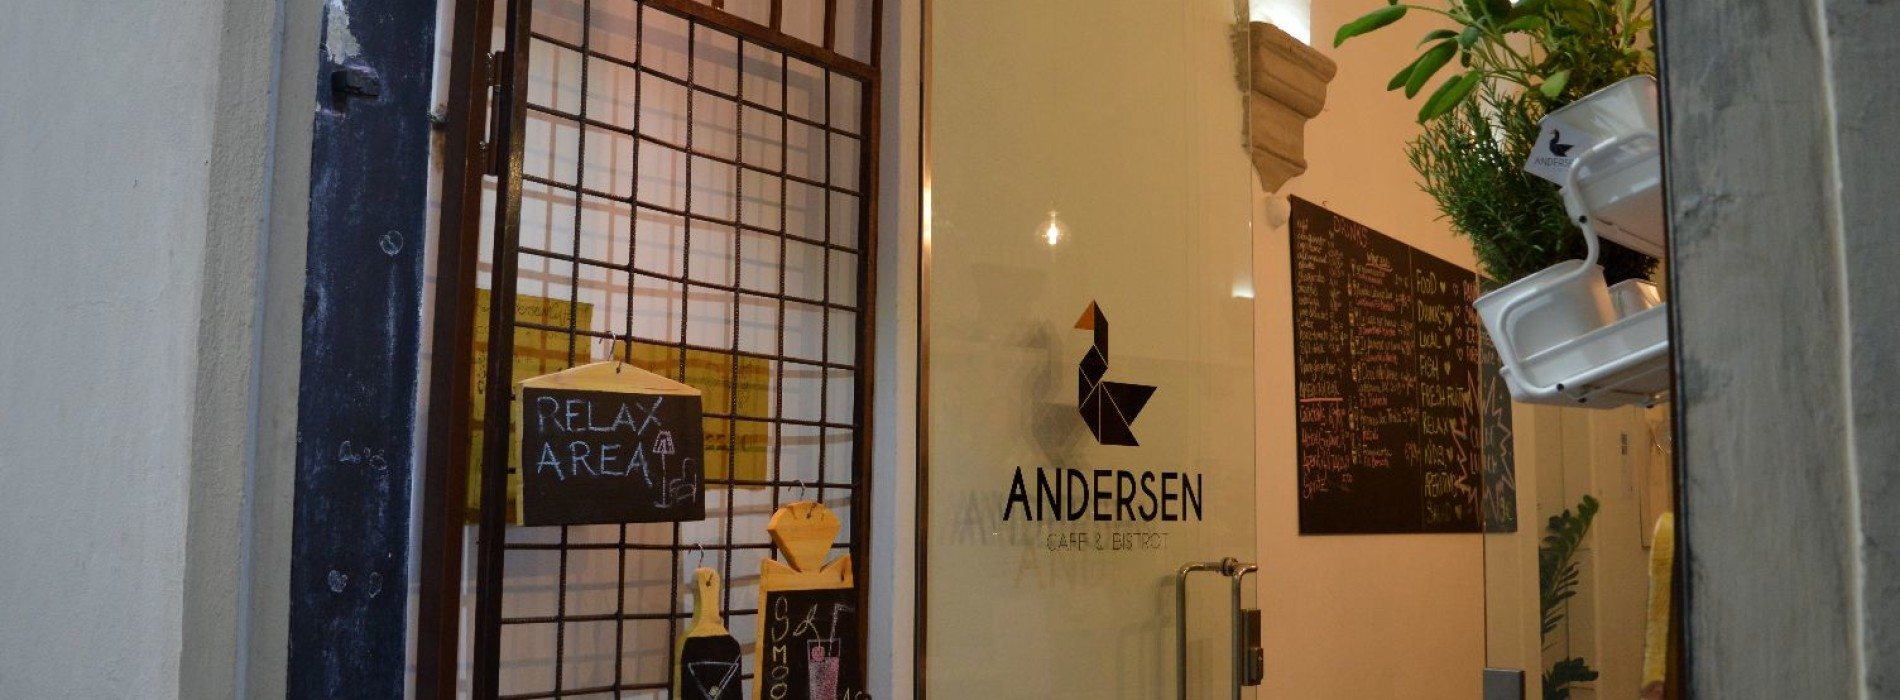 Andersen Cafe a Firenze, il bar bistrot family friendly dal sapore nordico